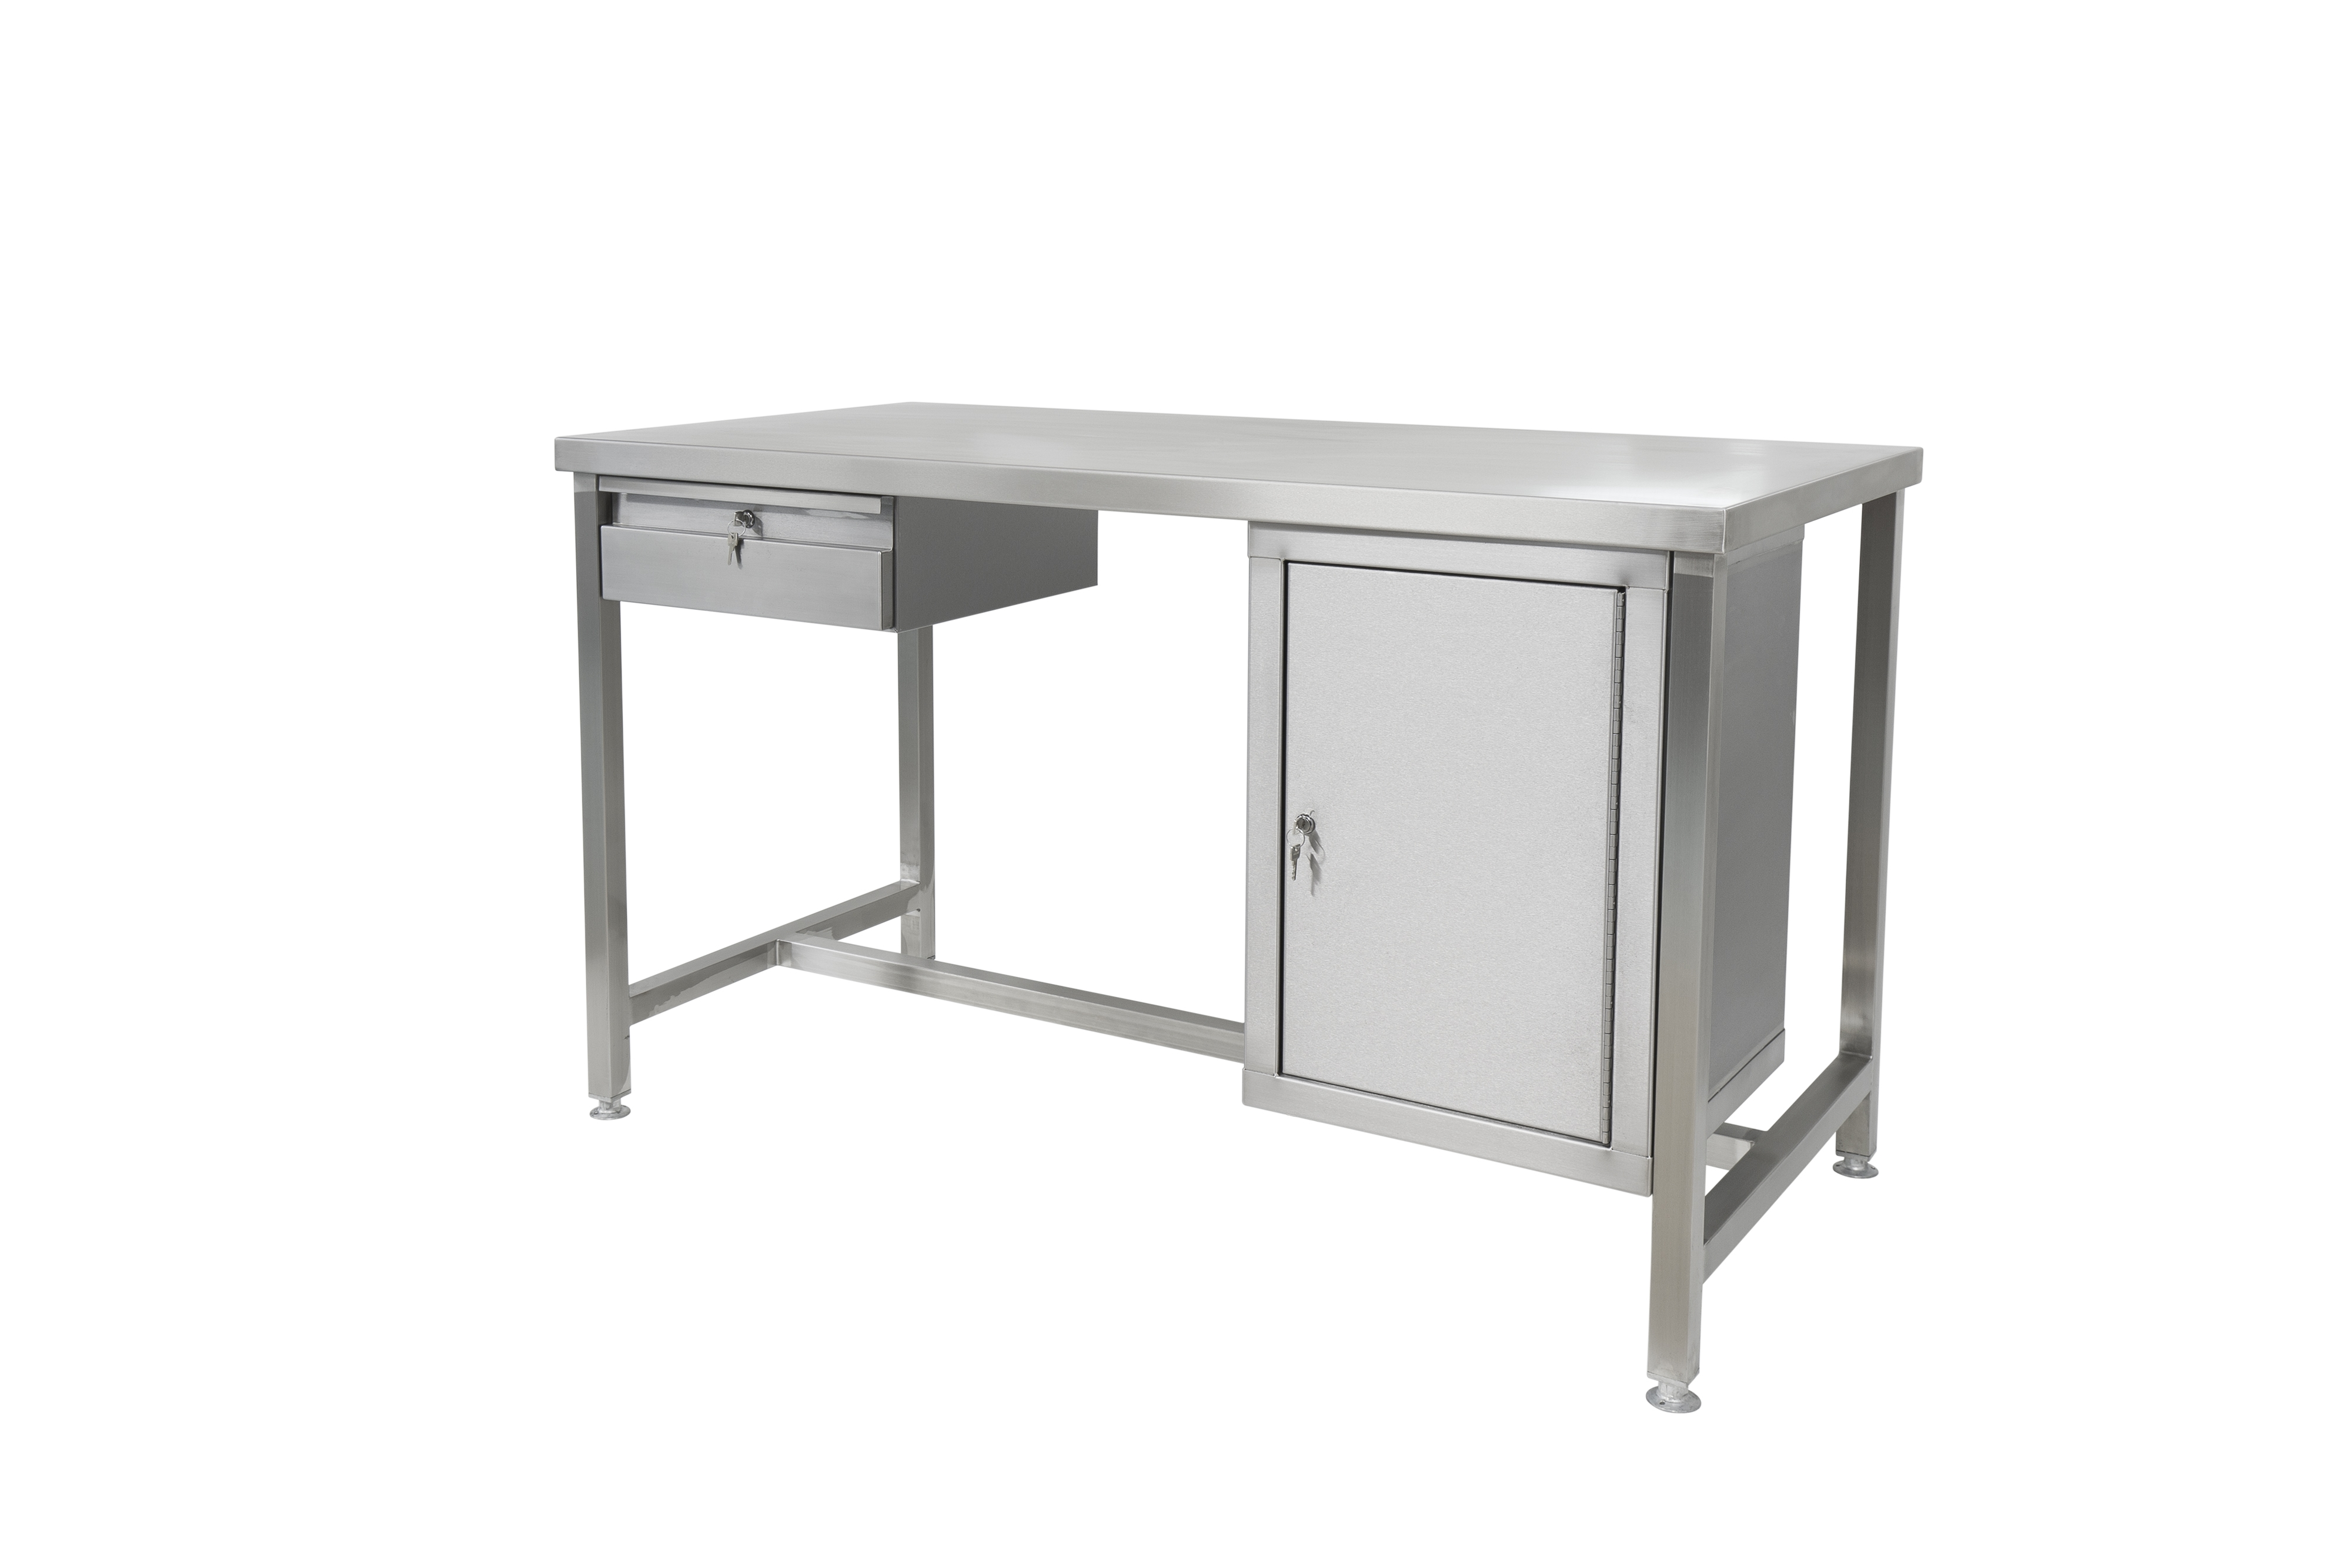 SS1575S_-_1500mm_x_750mm_SS_Workbench_with_drawer_and_cupboard